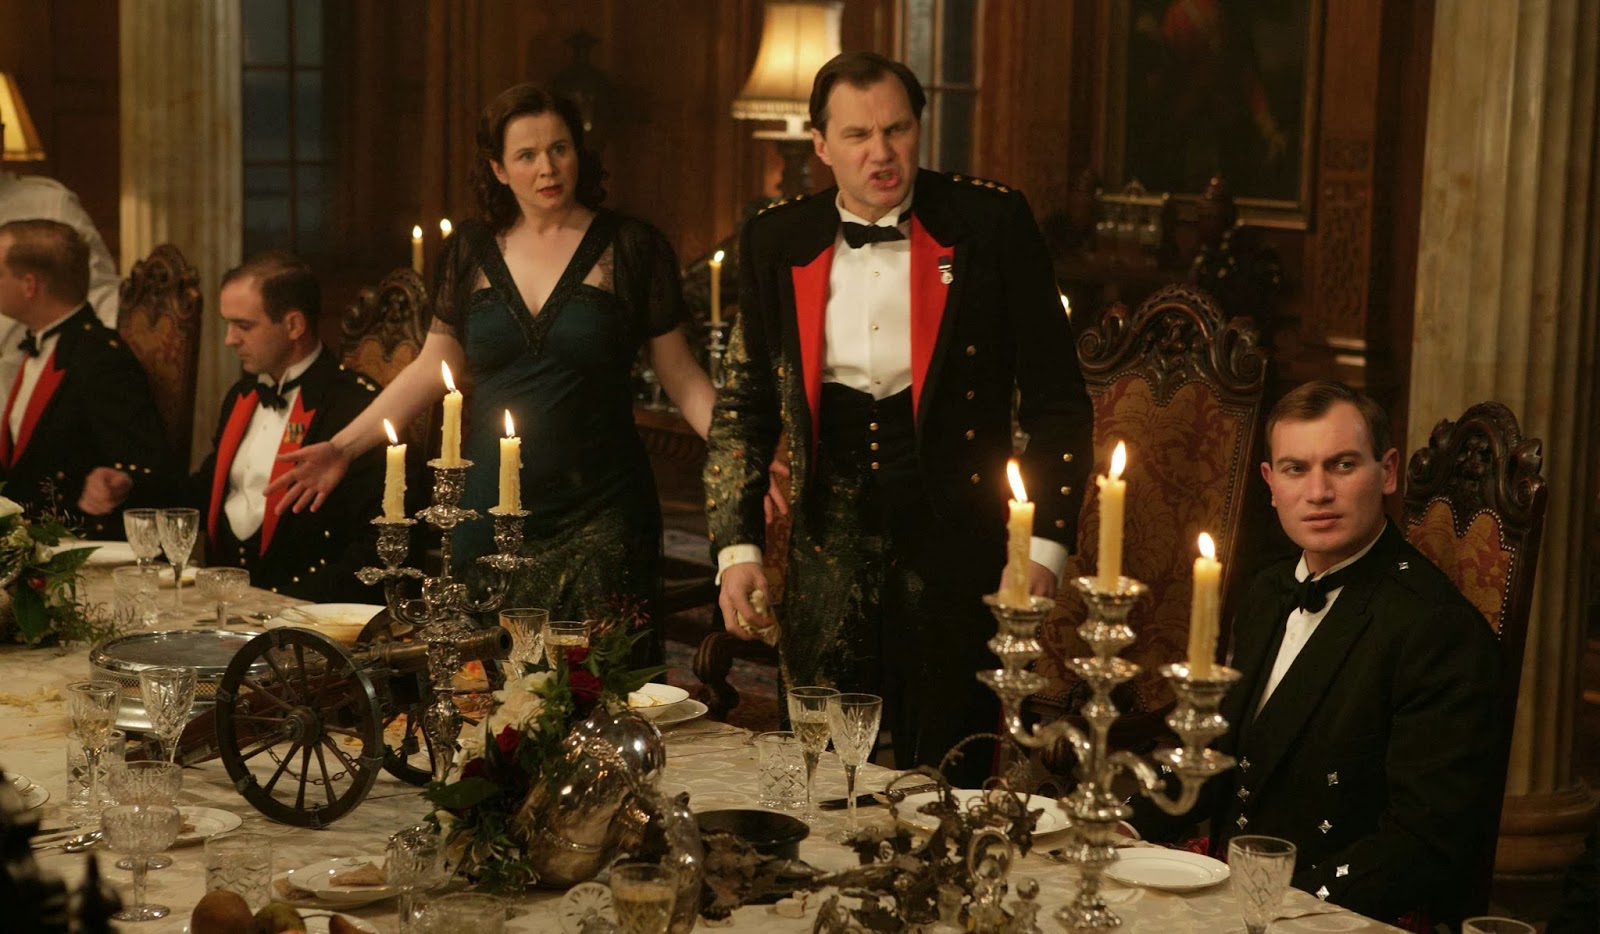 Etiquipedia: The State of British Table Manners, Knives Forks and